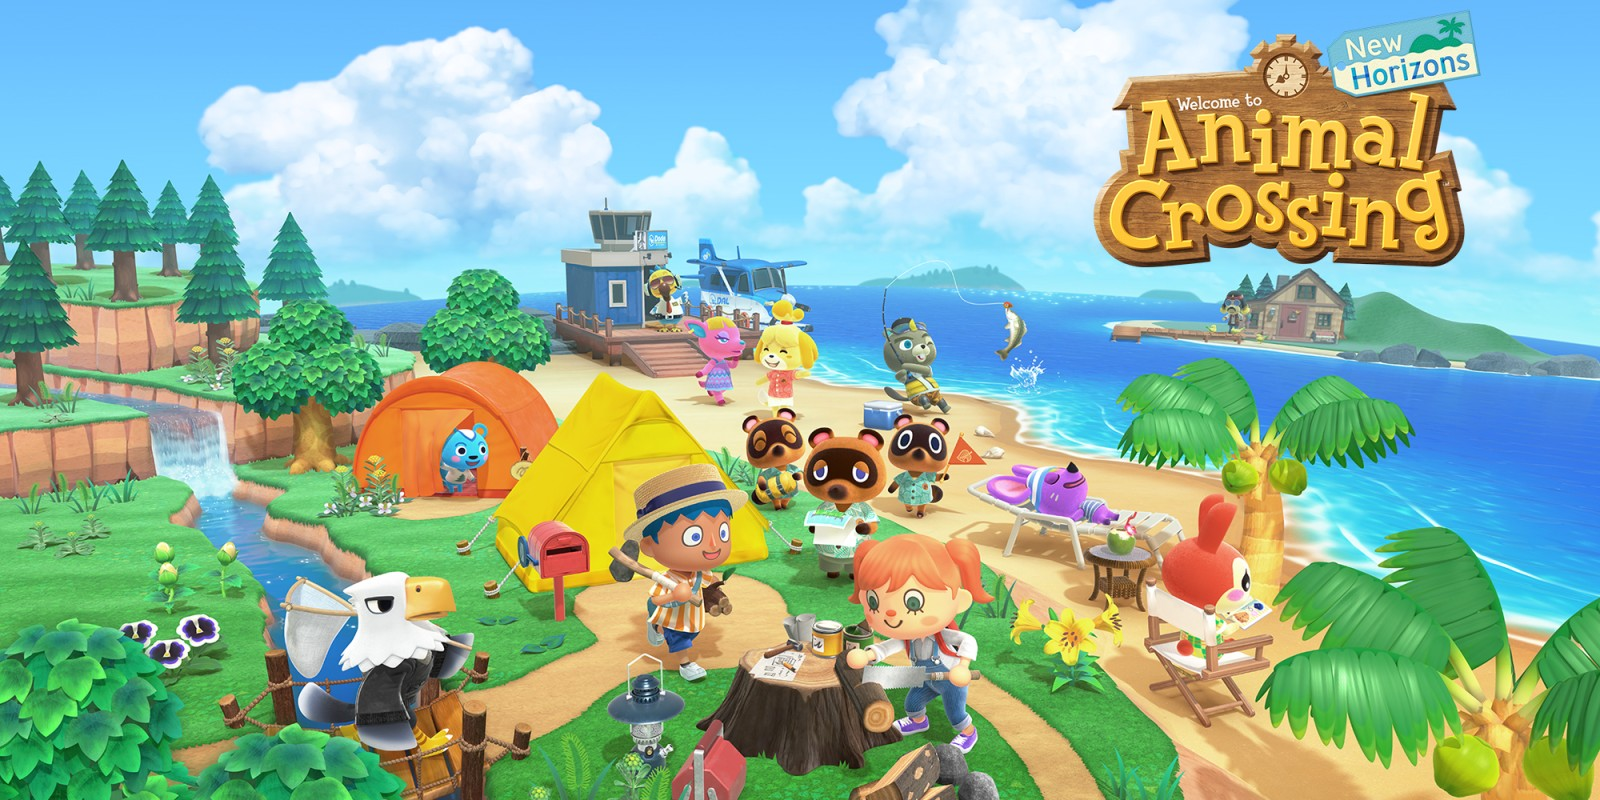 Animal Crossing: New Horizons | Nintendo Switch | Games | Nintendo